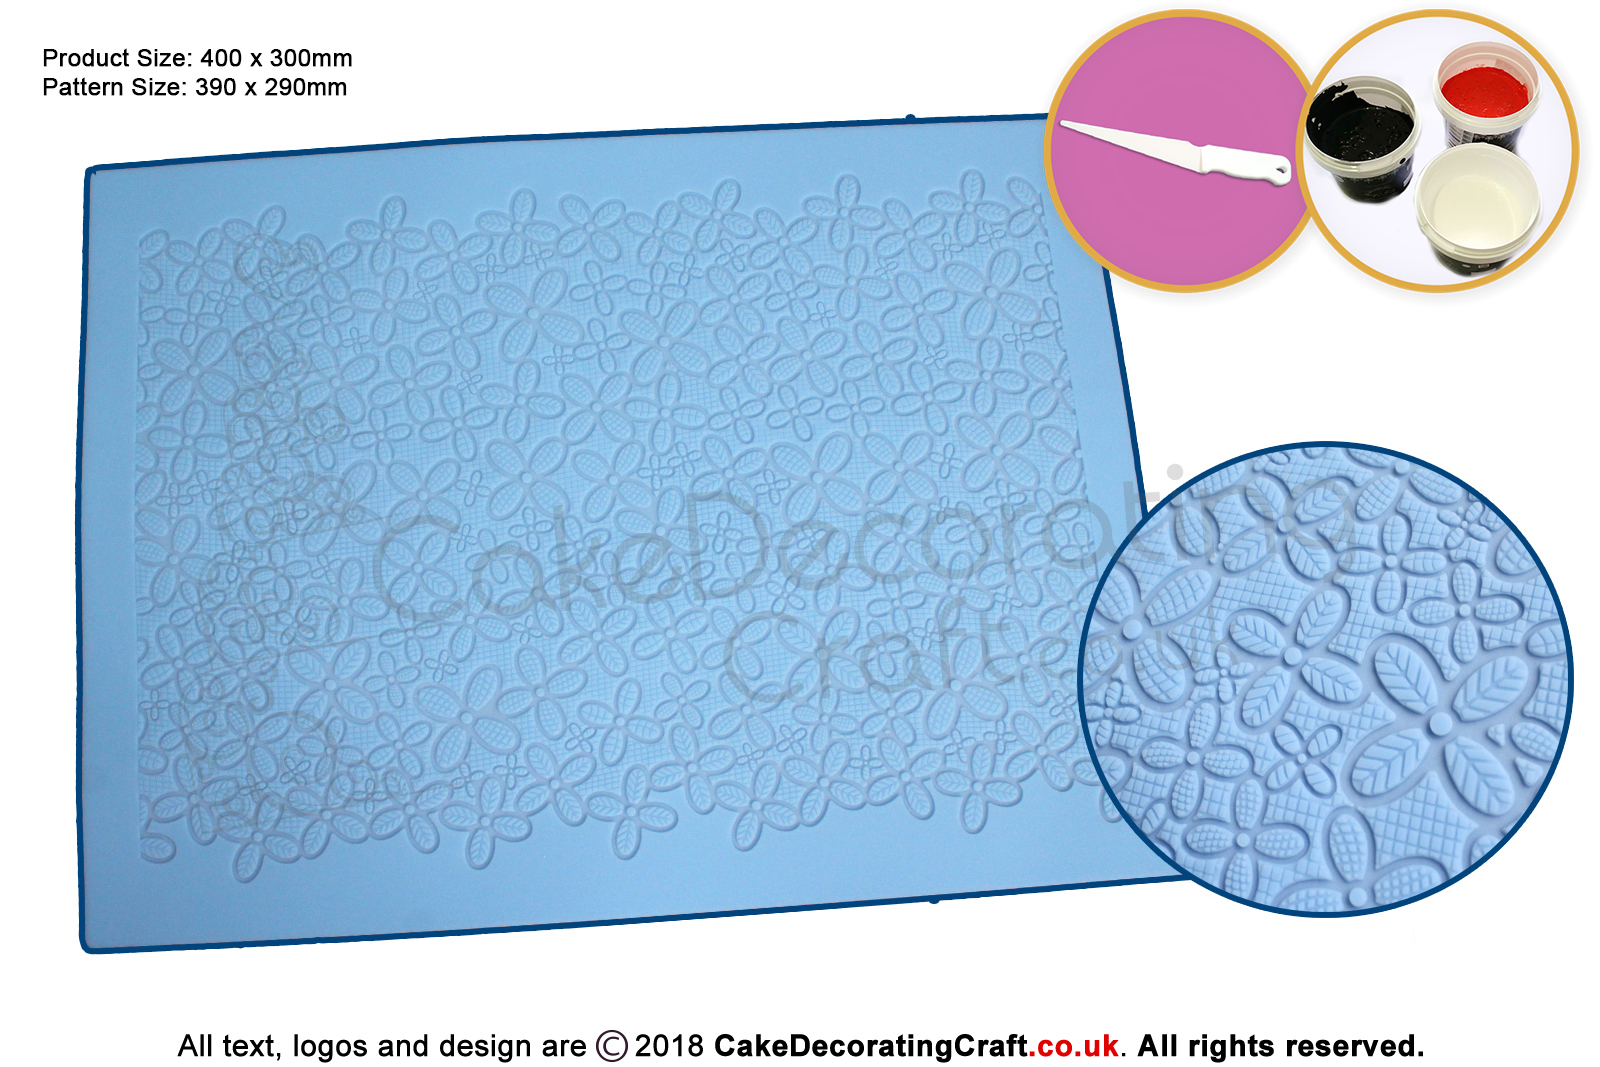 3d Daisy Lace Fabric Cake Lace Mats Cake Decorating Starter Kit